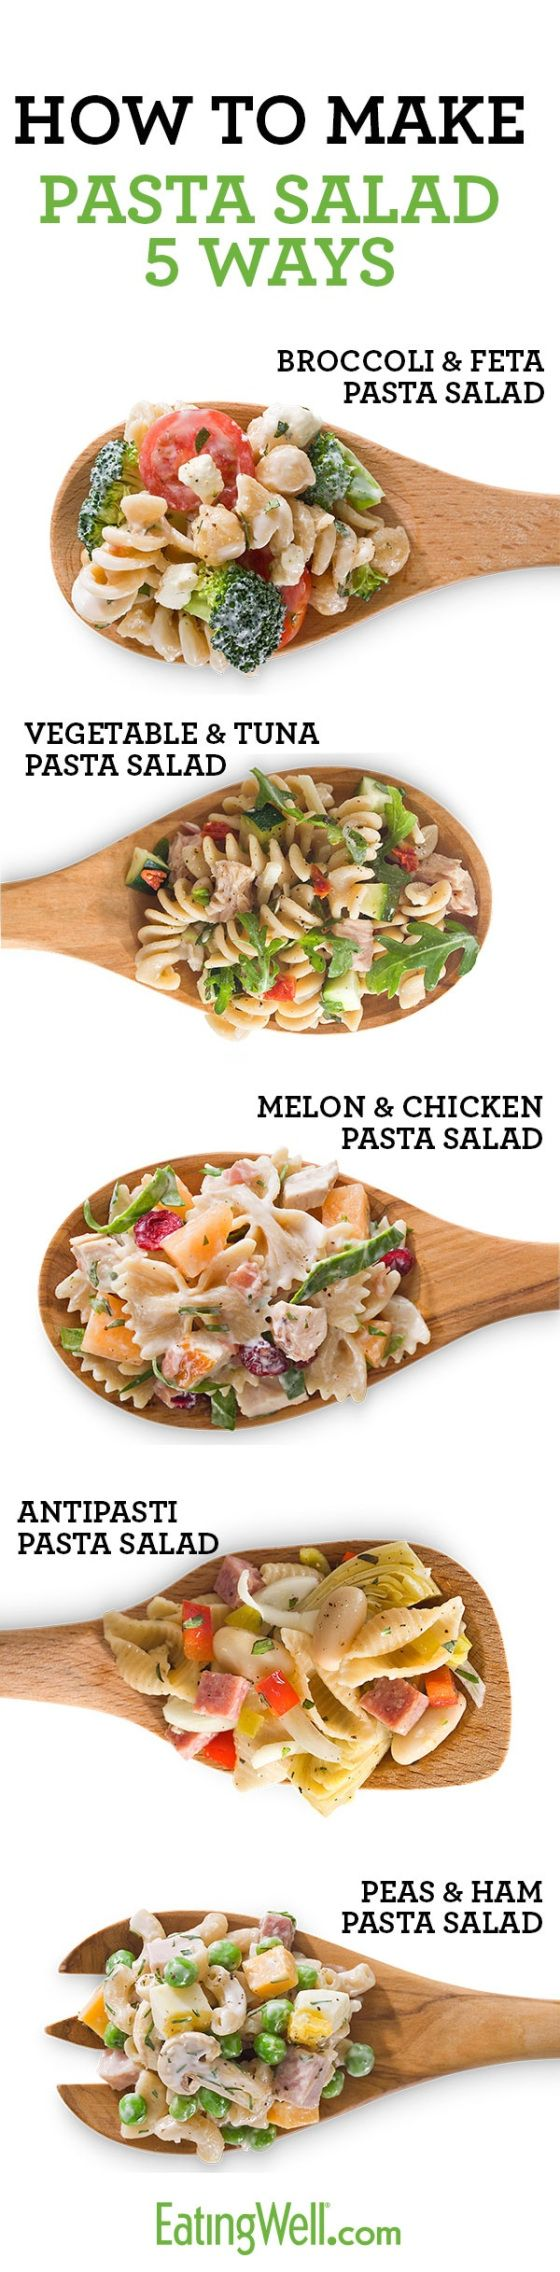 Healthy Pasta Salads are a great addition to a healthy meal! #pastafitsme